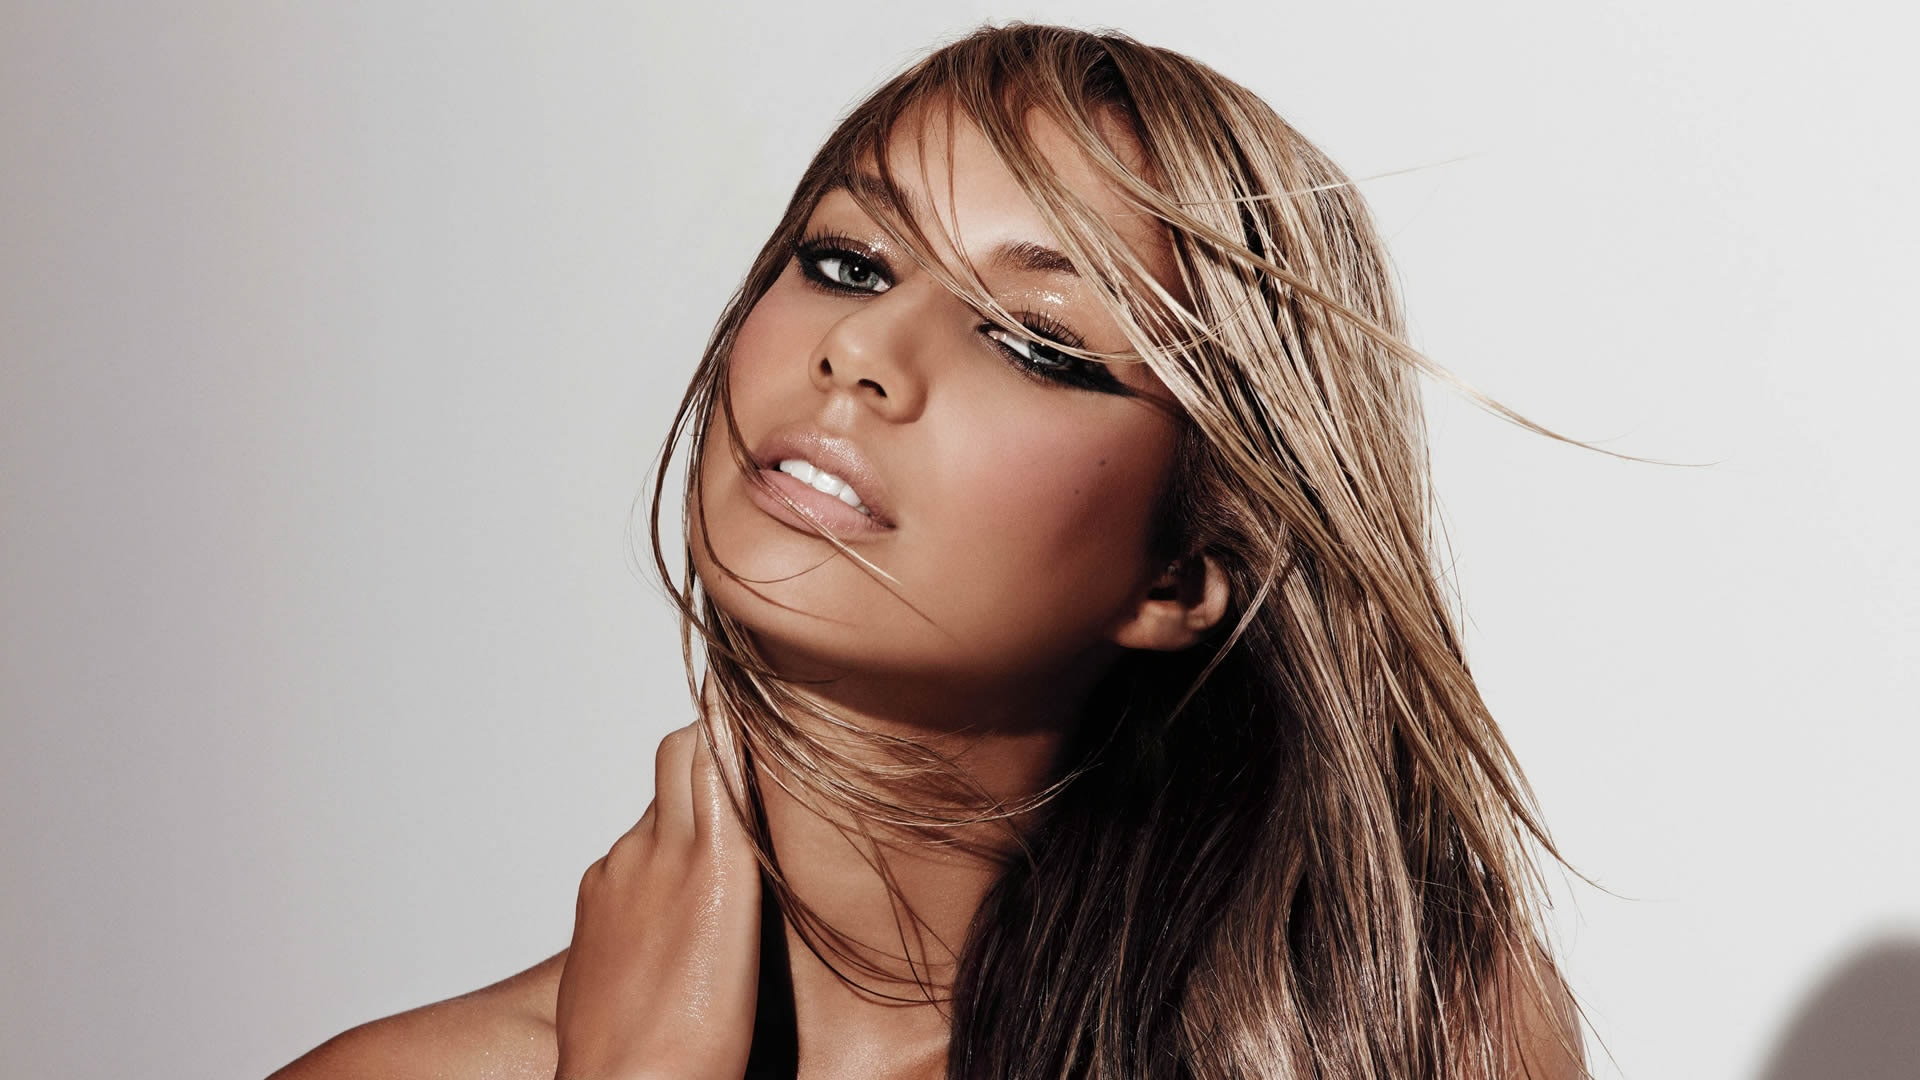 Leona lewis music downloads